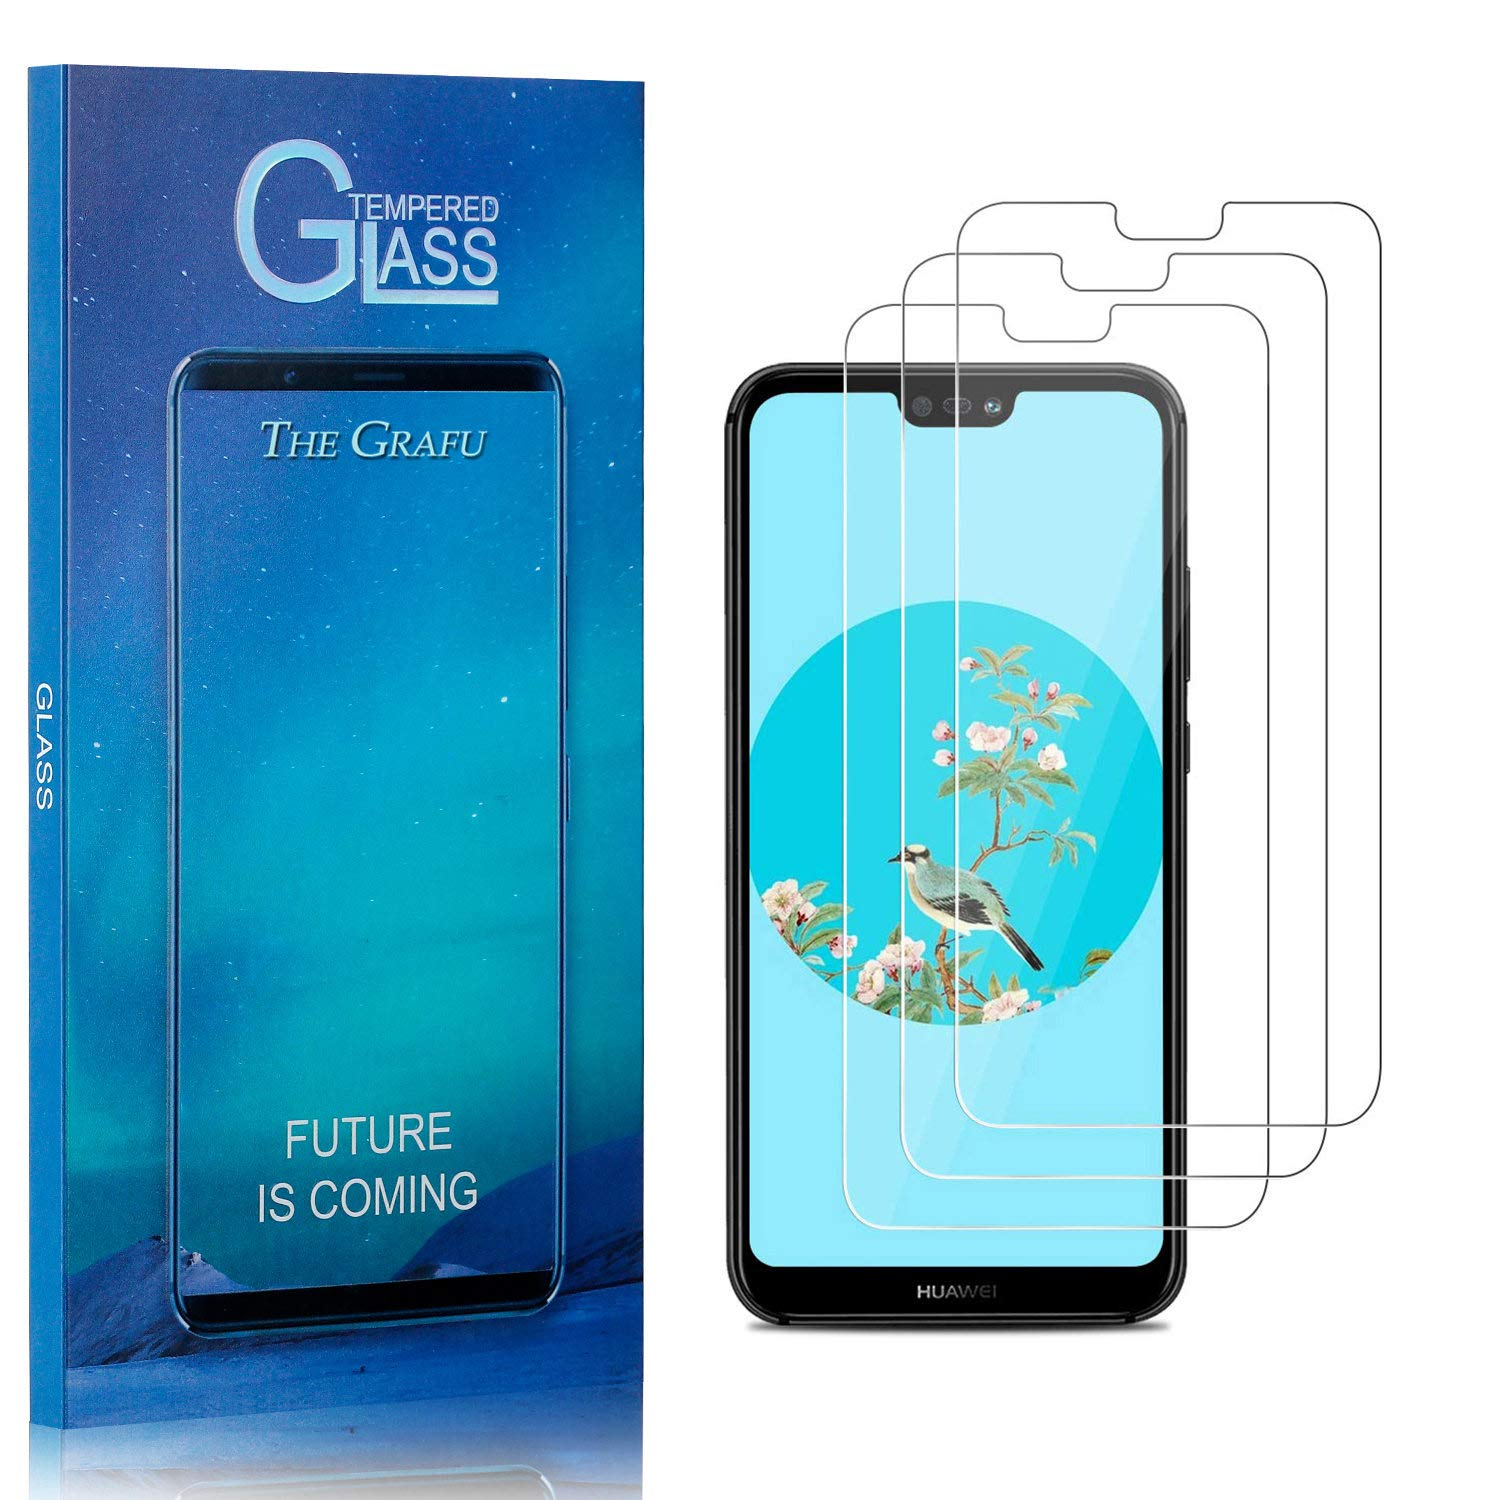 Ultra Clear Drop Fall Protection 9H Tempered Glass Screen Protector for Huawei P20 4 Pack Bubble Free The Grafu Screen Protector for Huawei P20